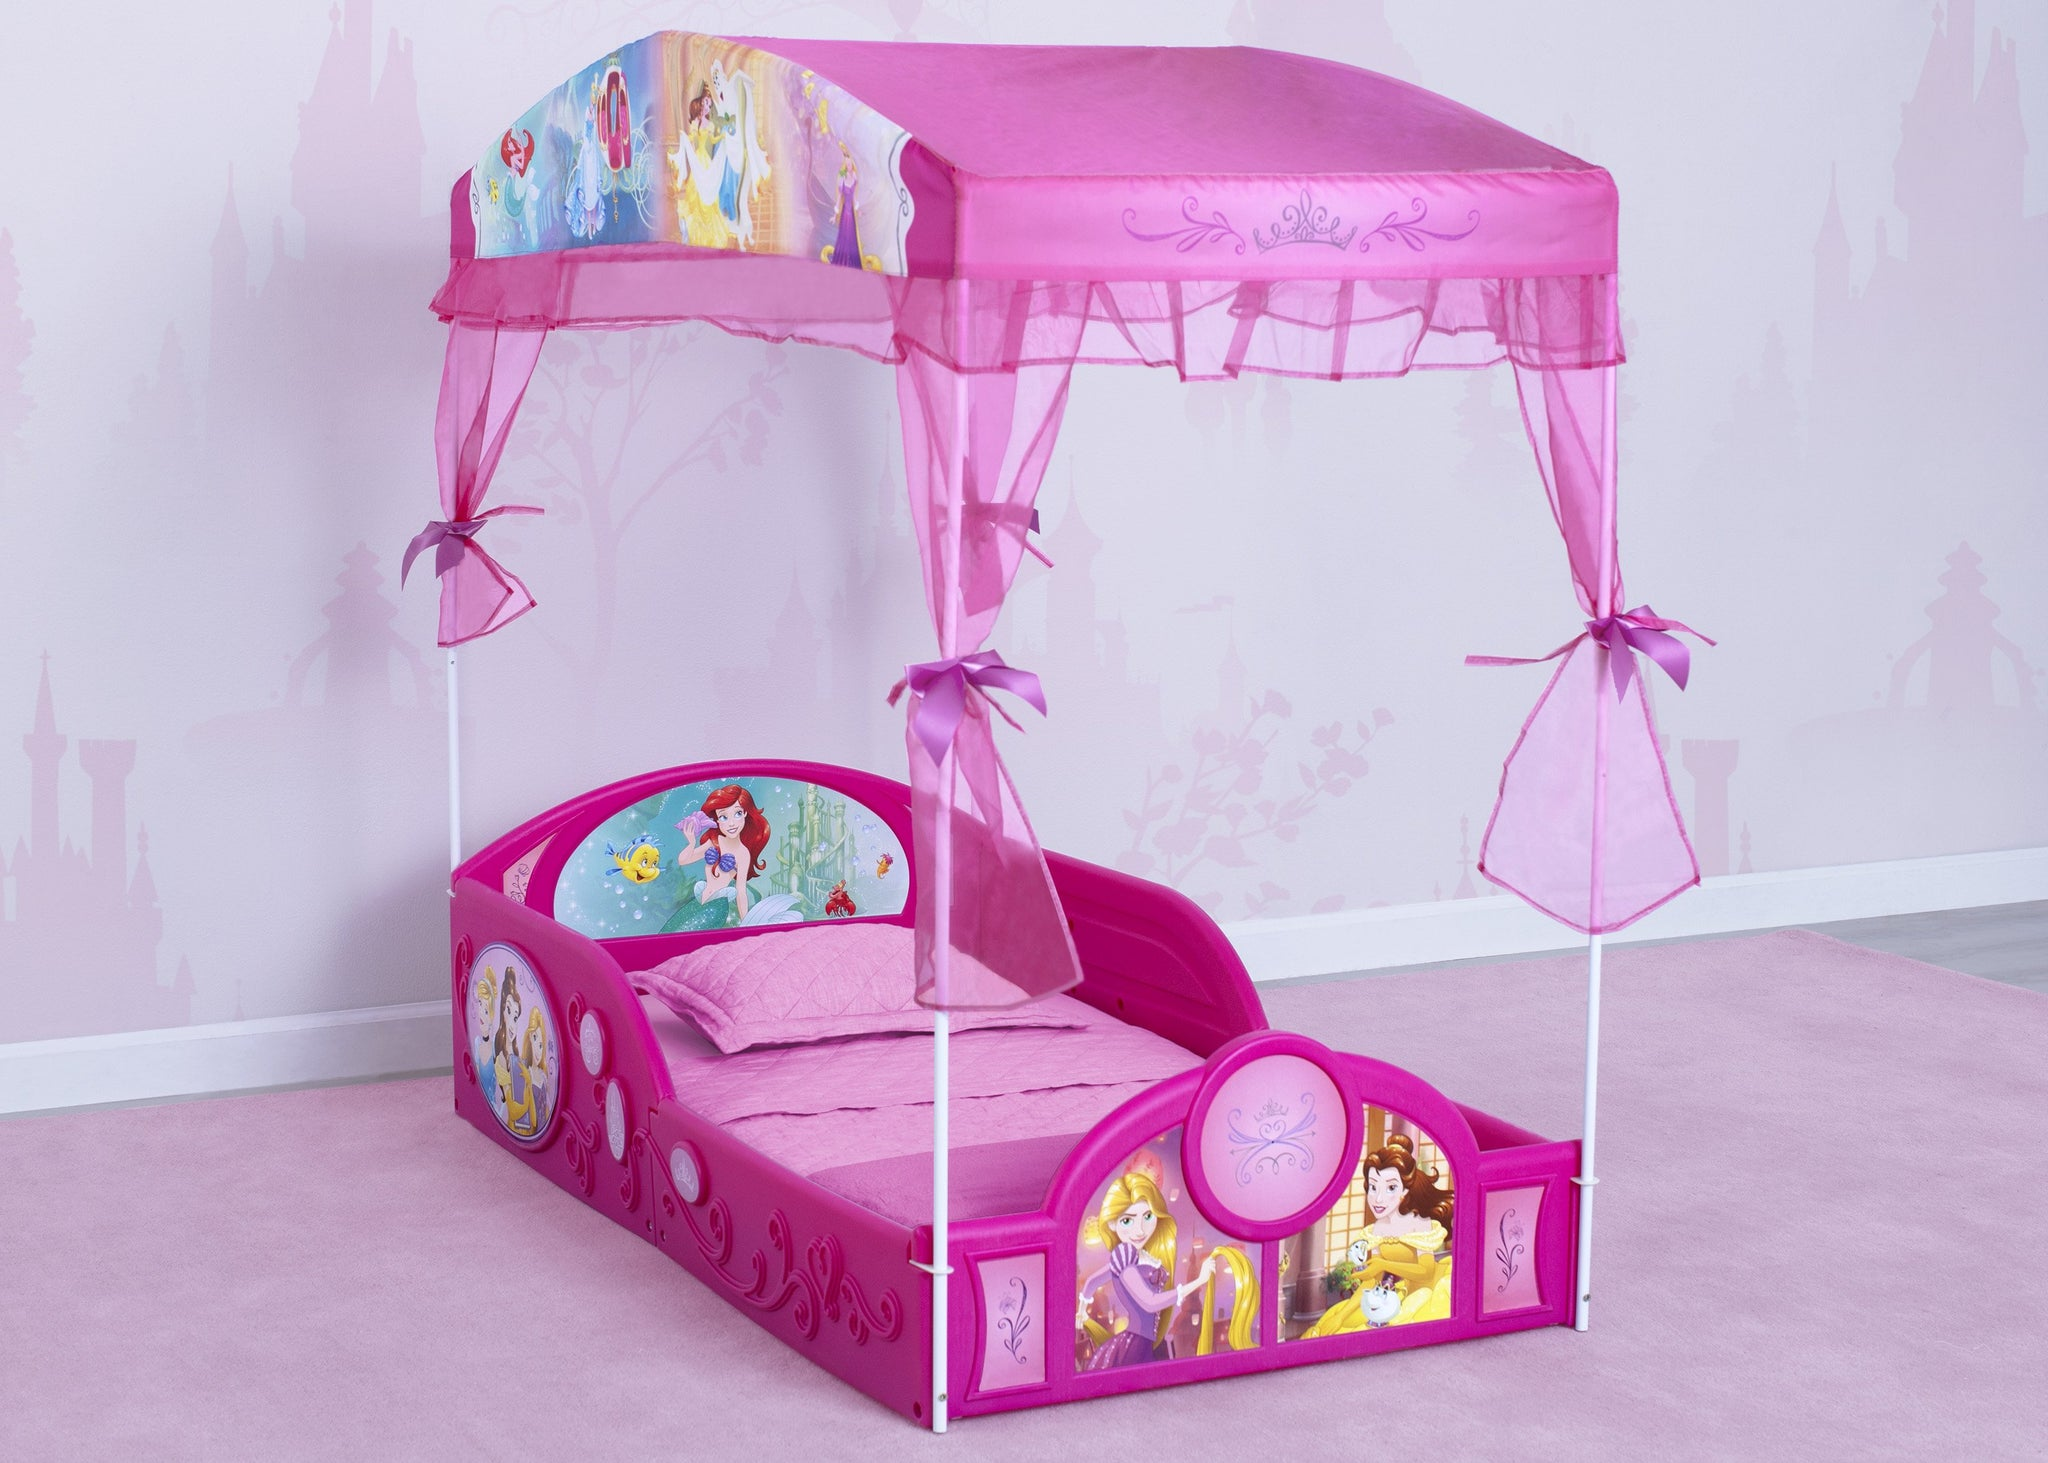 - Disney Princess Plastic Sleep And Play Toddler Bed With Canopy By